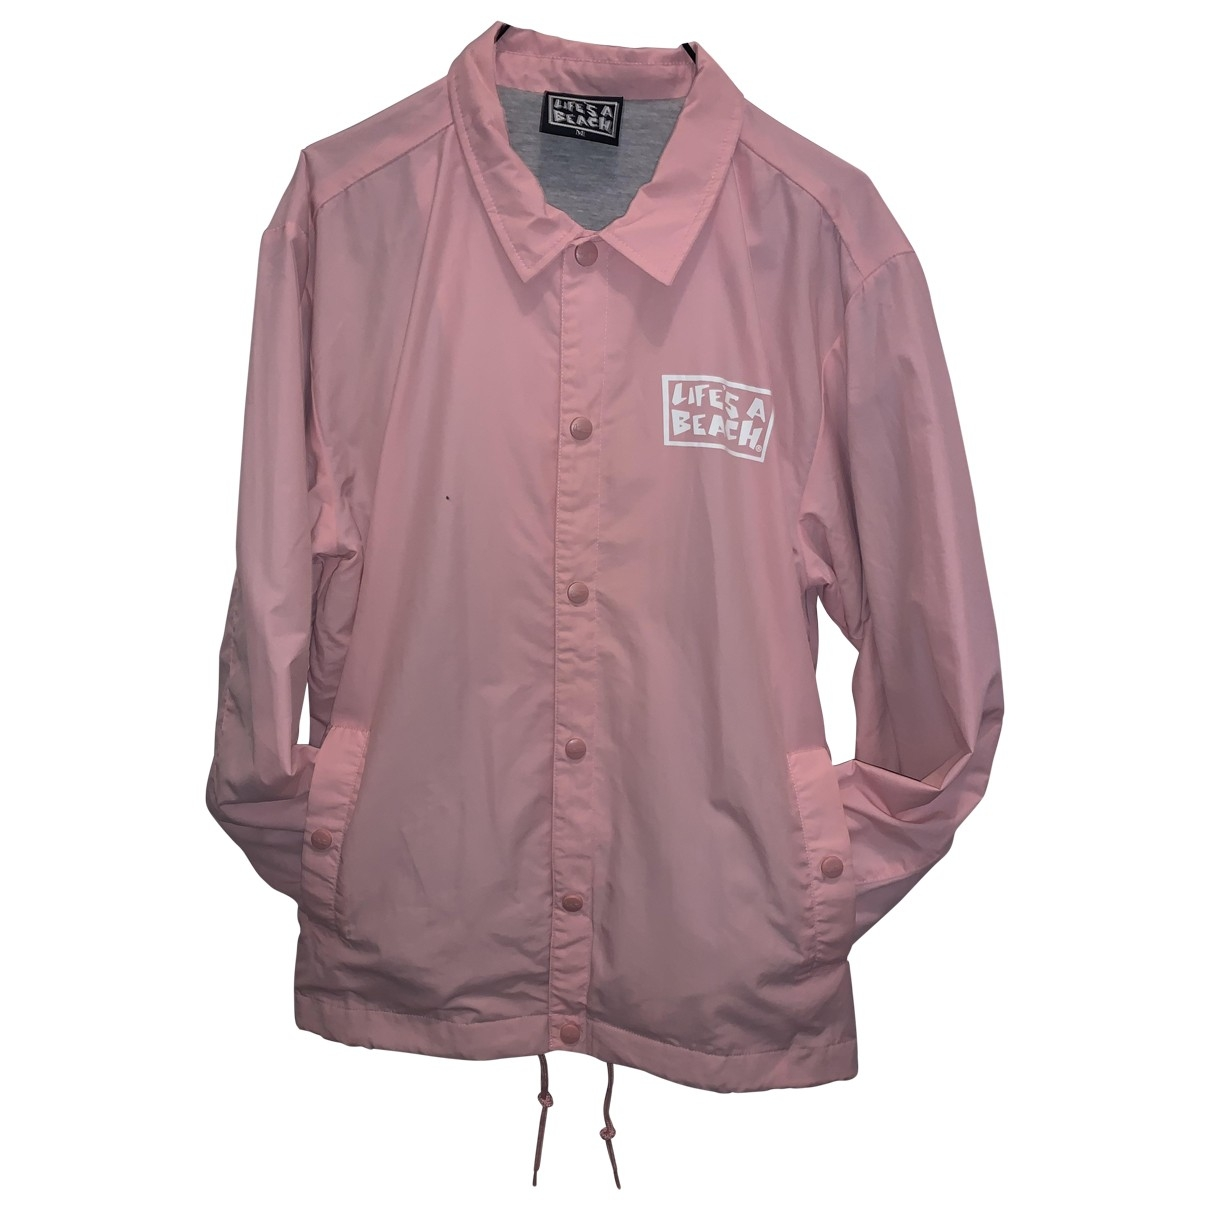 Urban Outfitters \N Pink jacket for Women M International